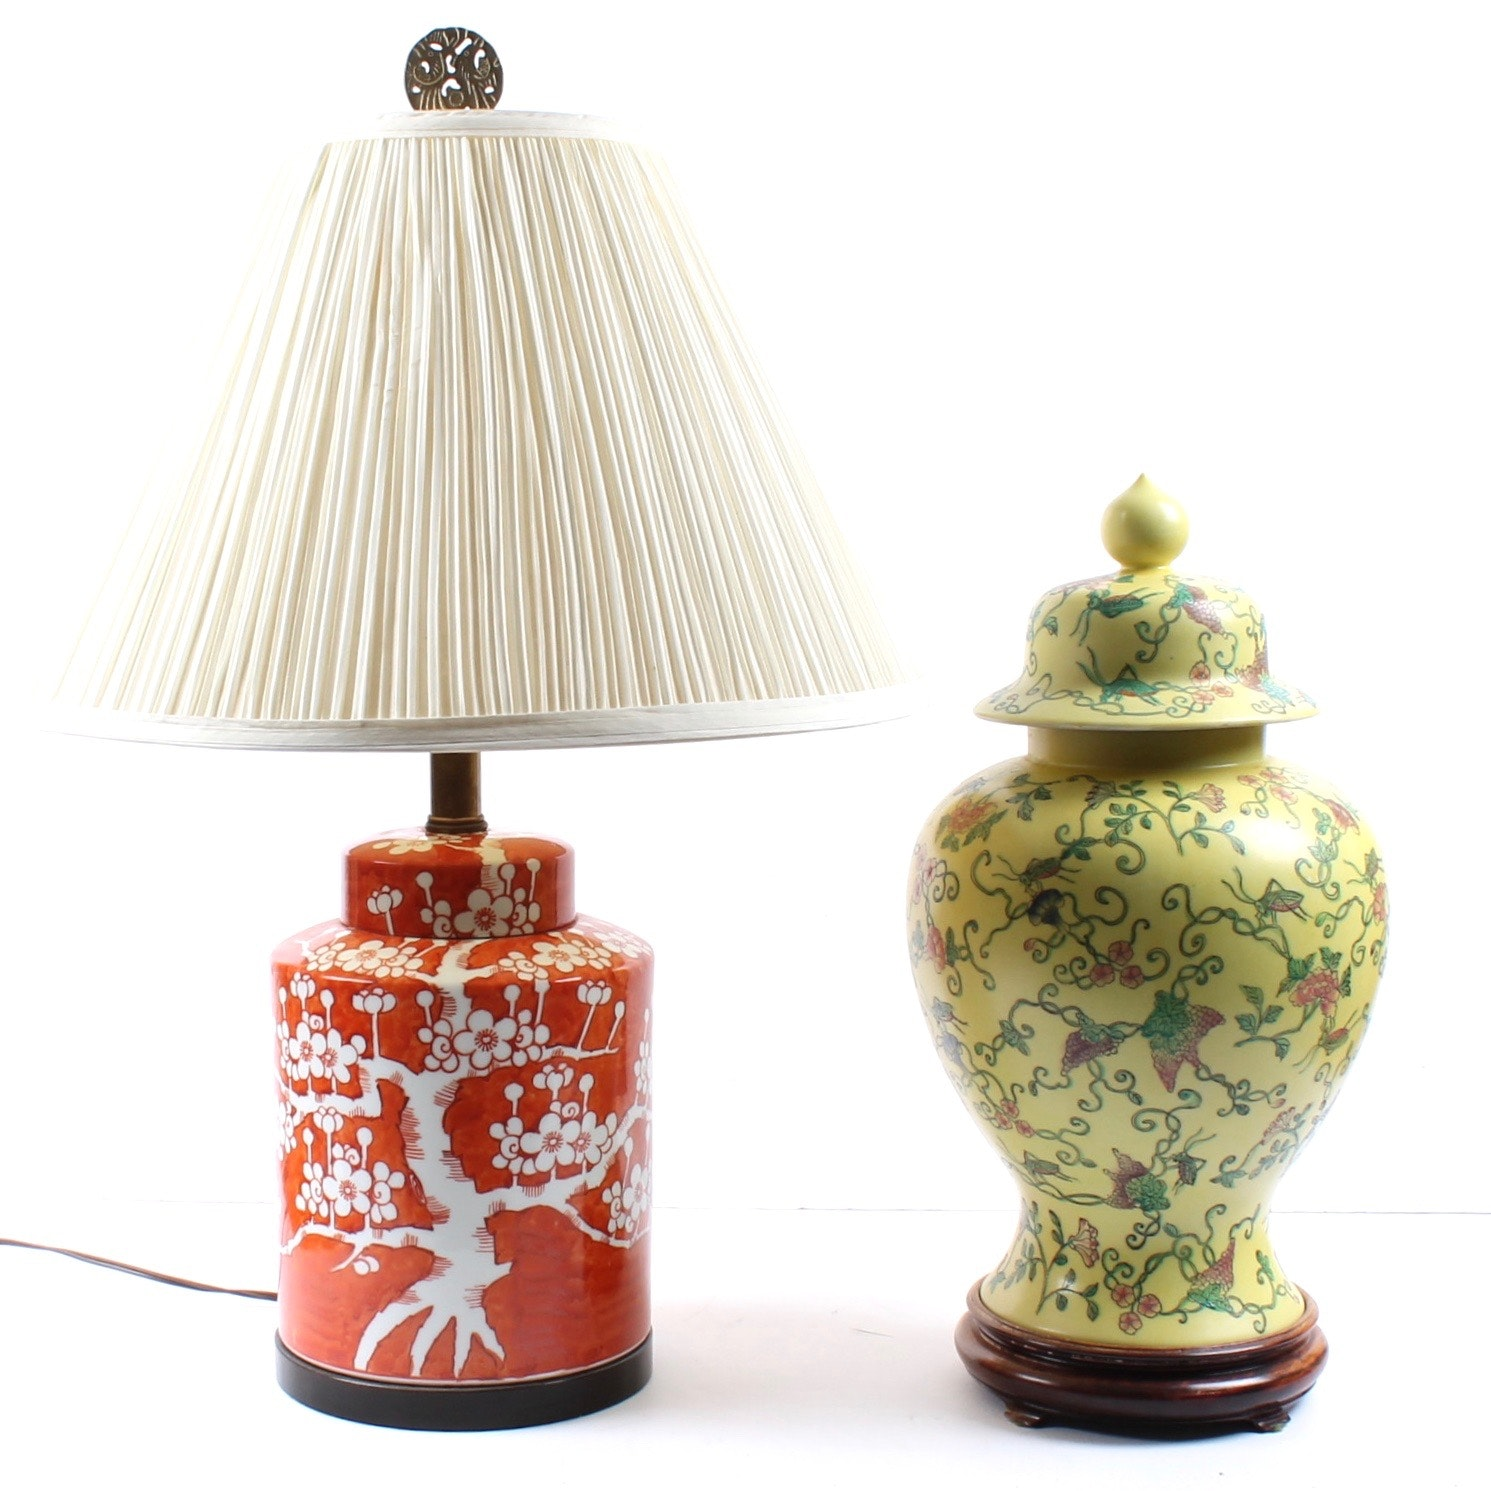 East Asian Ceramic Lamp and Lidded Vase